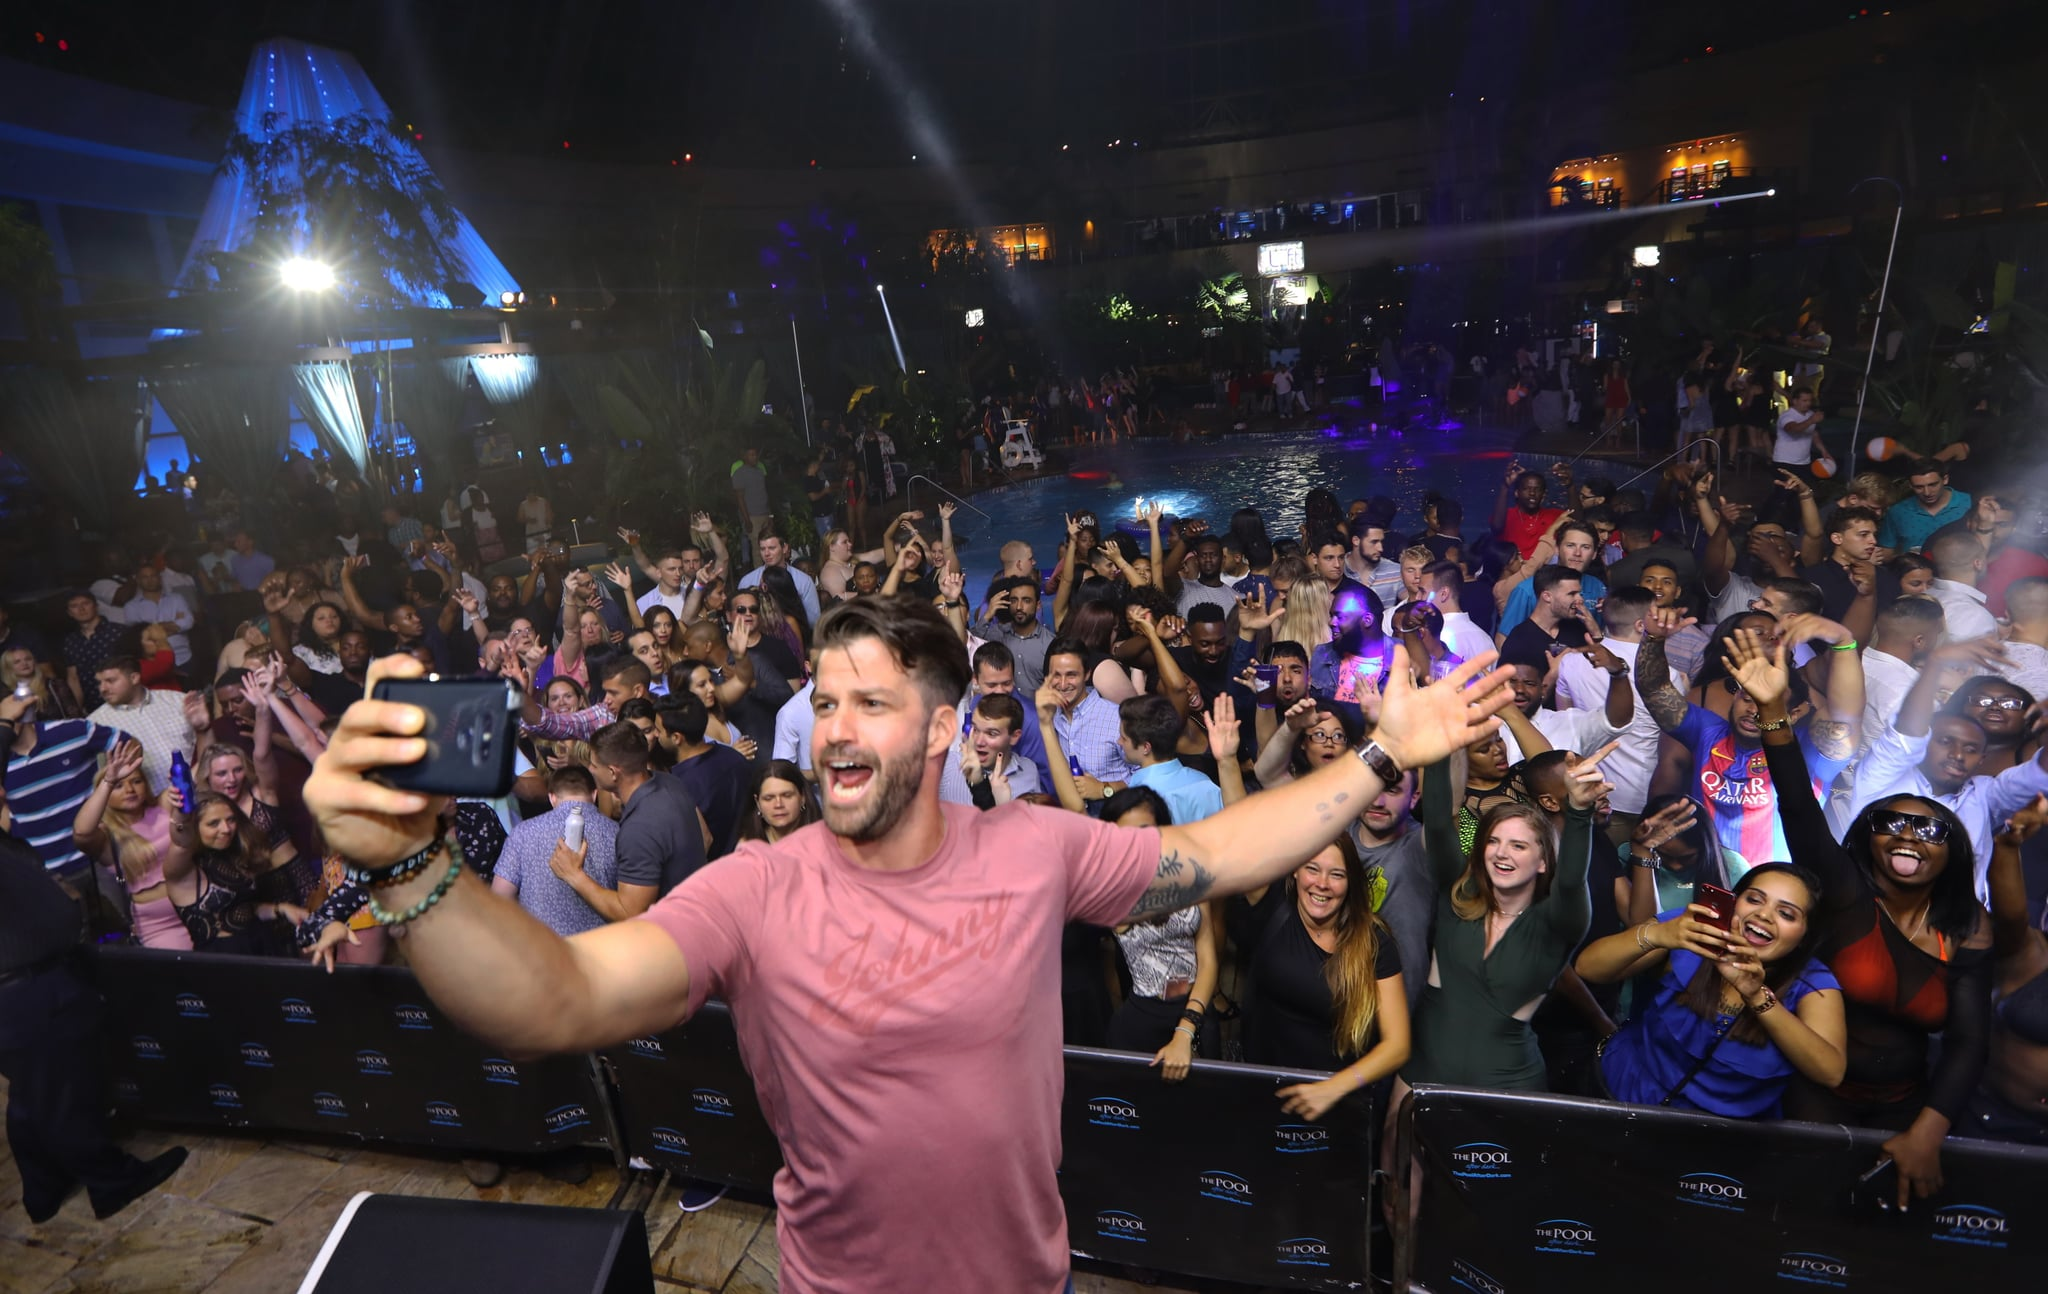 ATLANTIC CITY, NJ –June 30:  Johnny Bananas hosts The Pool After Dark at Harrah's Resort on Friday June 30, 2017 in Atlantic City, New Jersey (Photo by Tom Briglia/ WireImage)